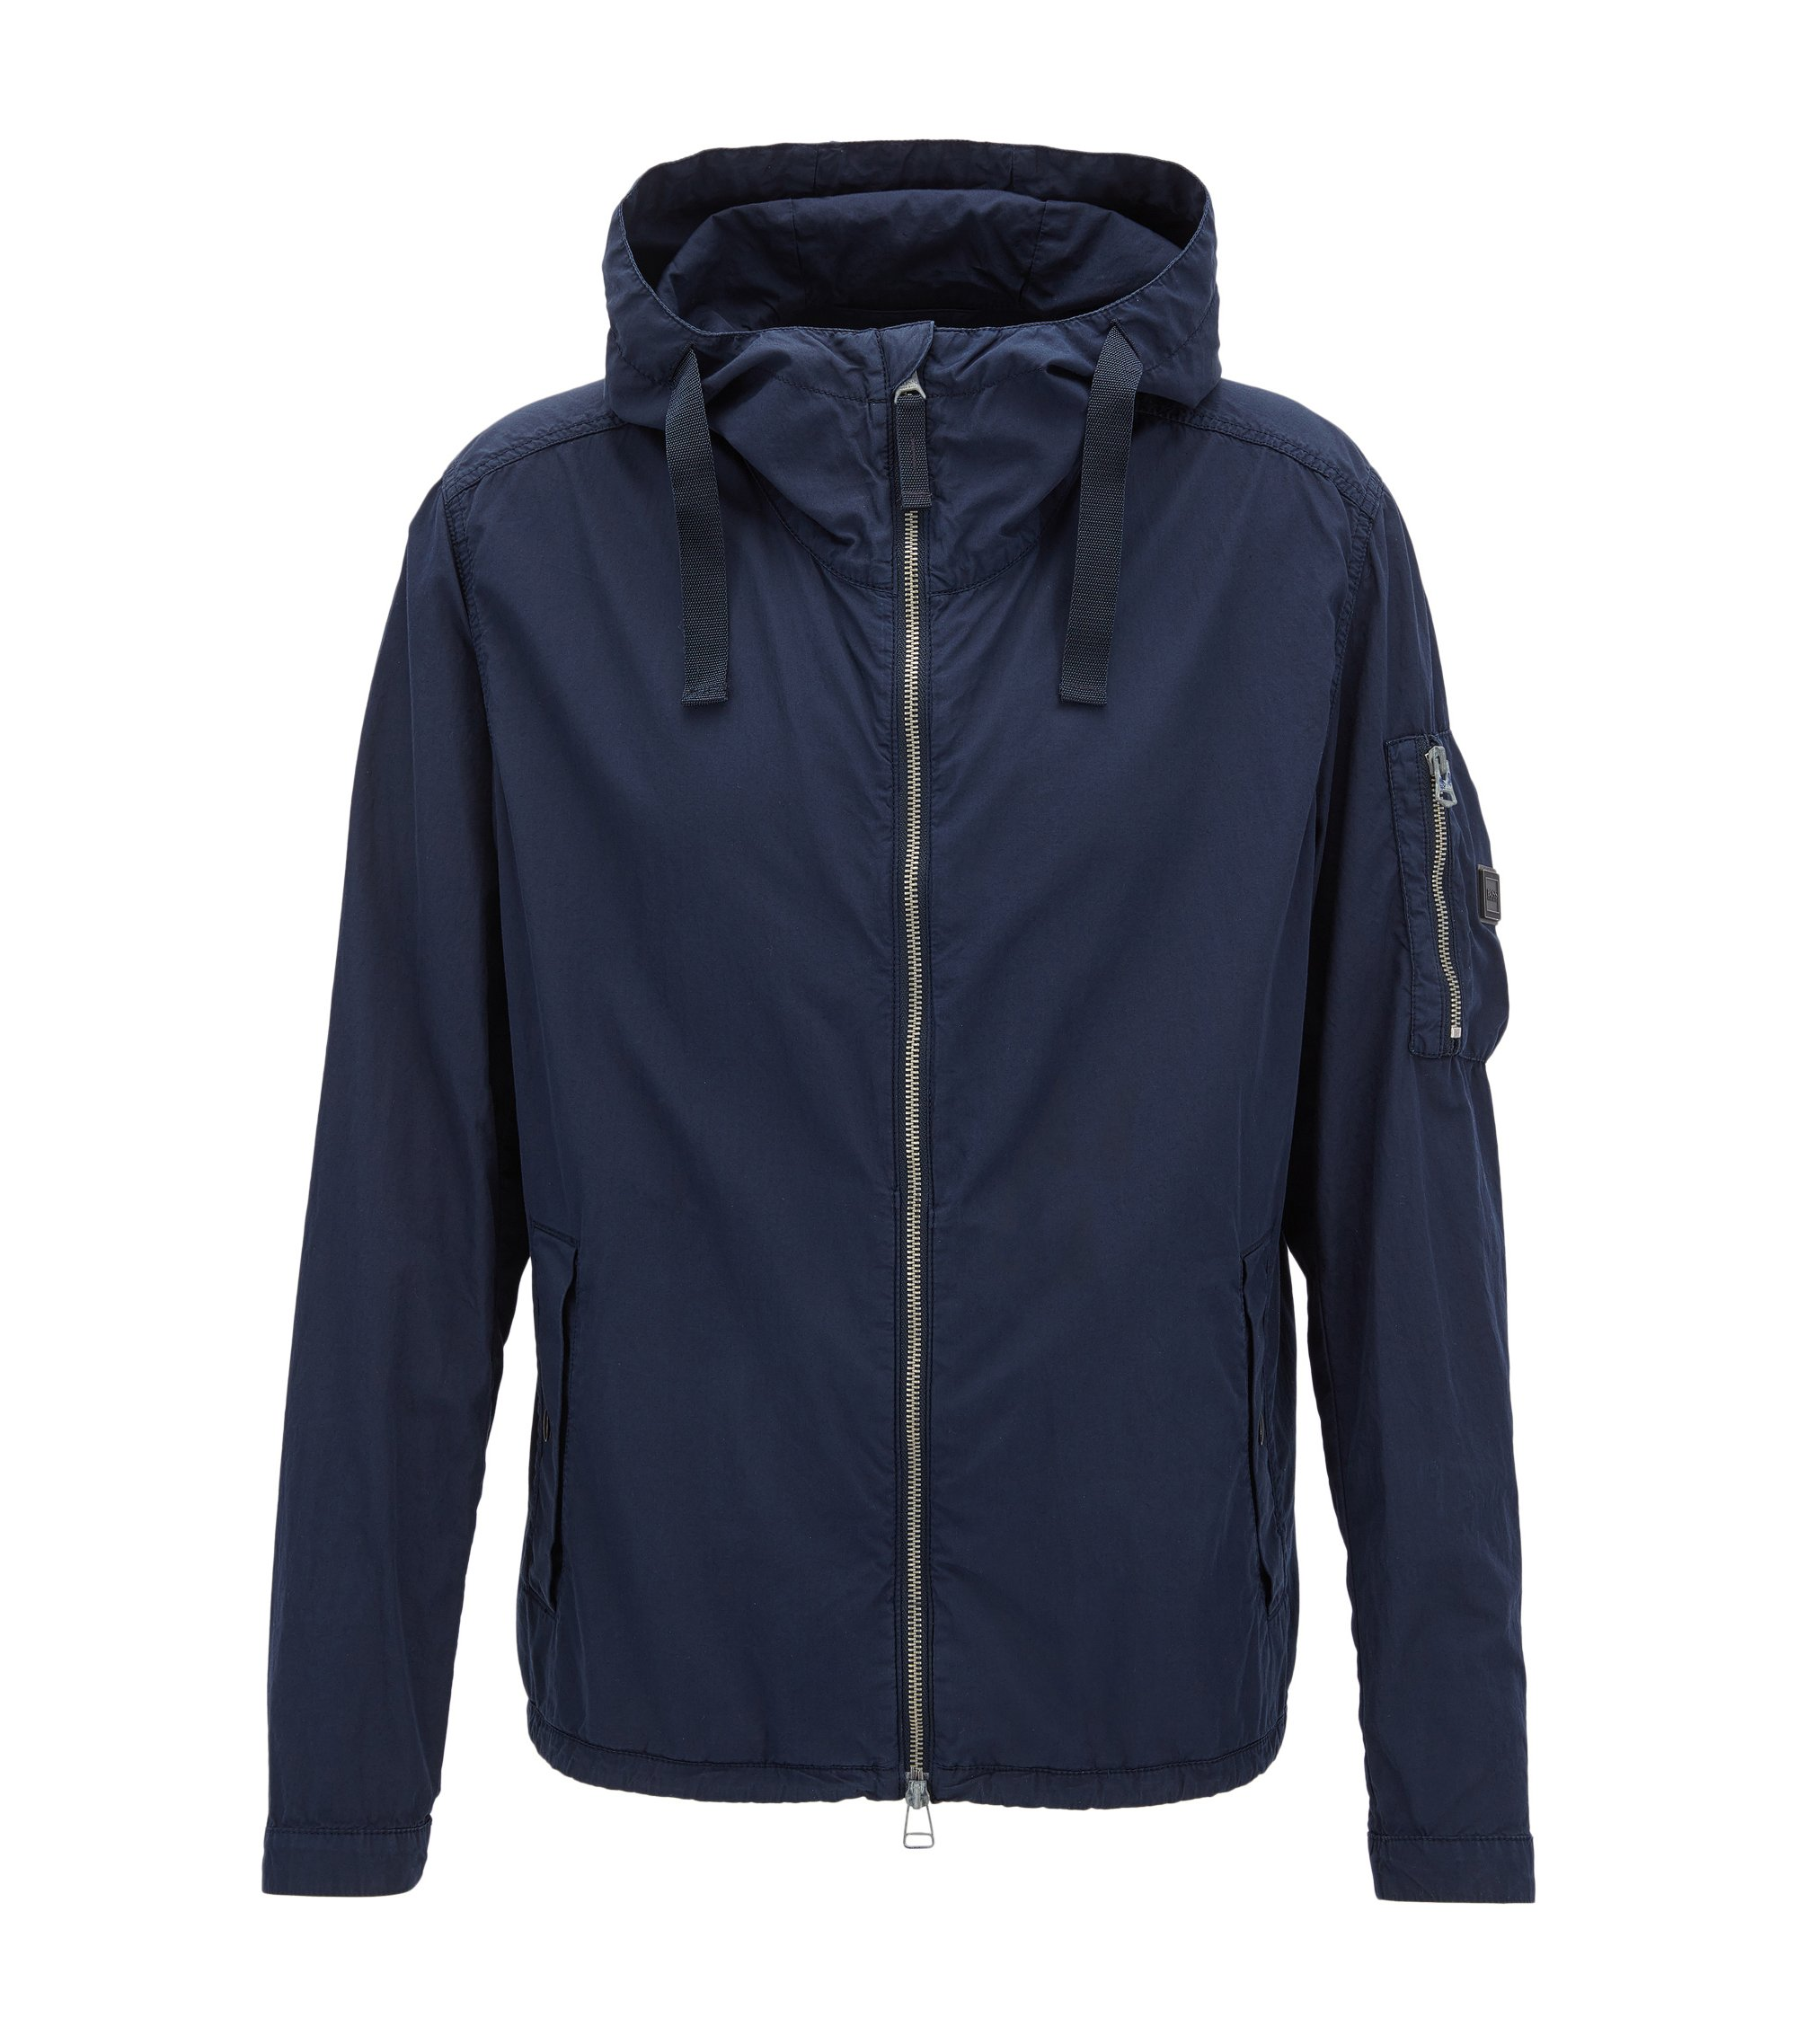 Brushed Cotton Jacket | Olvaro D, Dark Blue